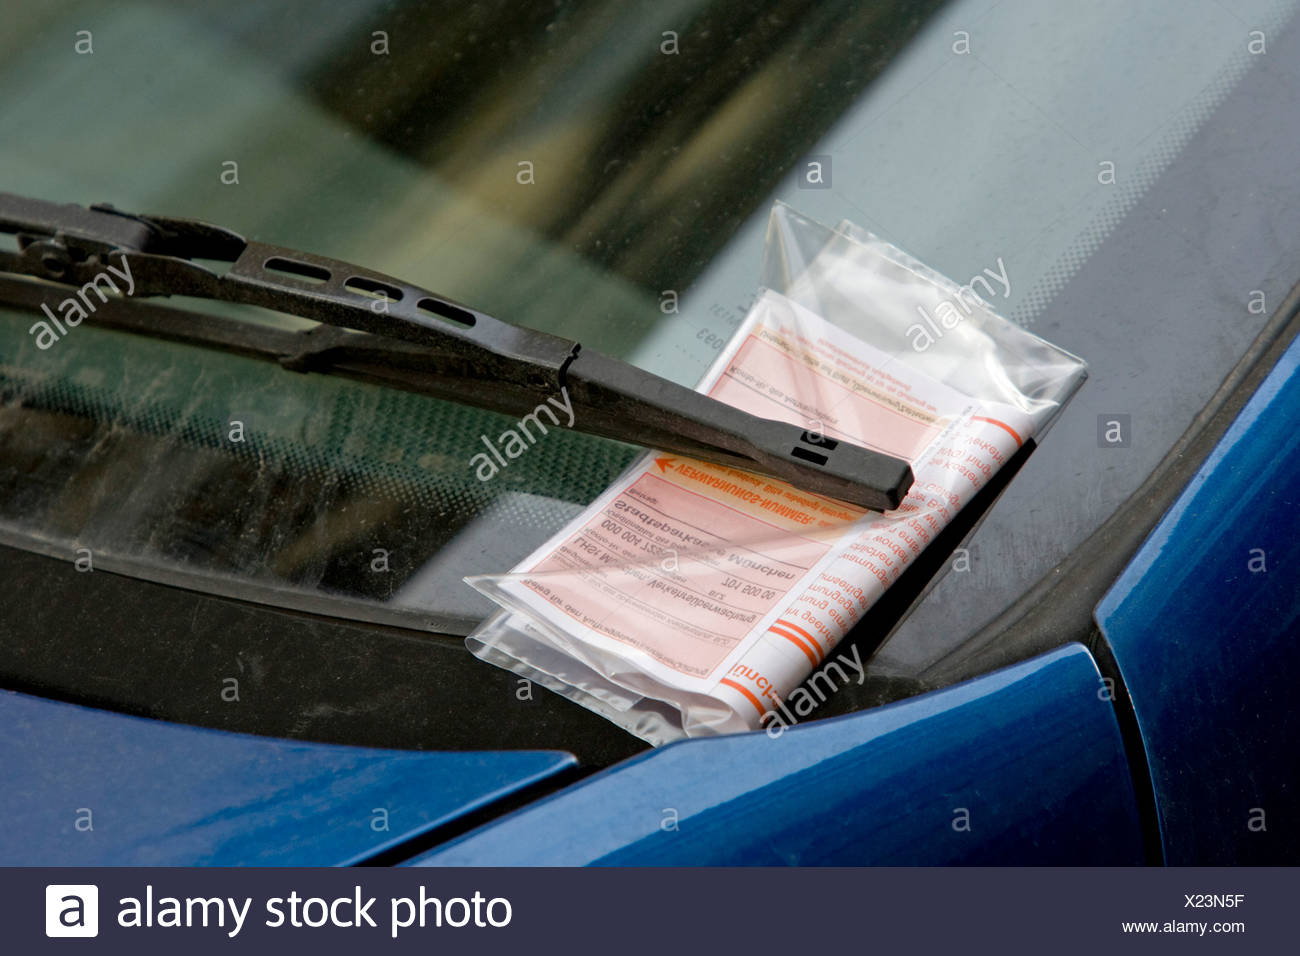 Parking ticket under the windscreen wiper of a parked car, Munich, Bavaria, Germany, Europe Stock Photo